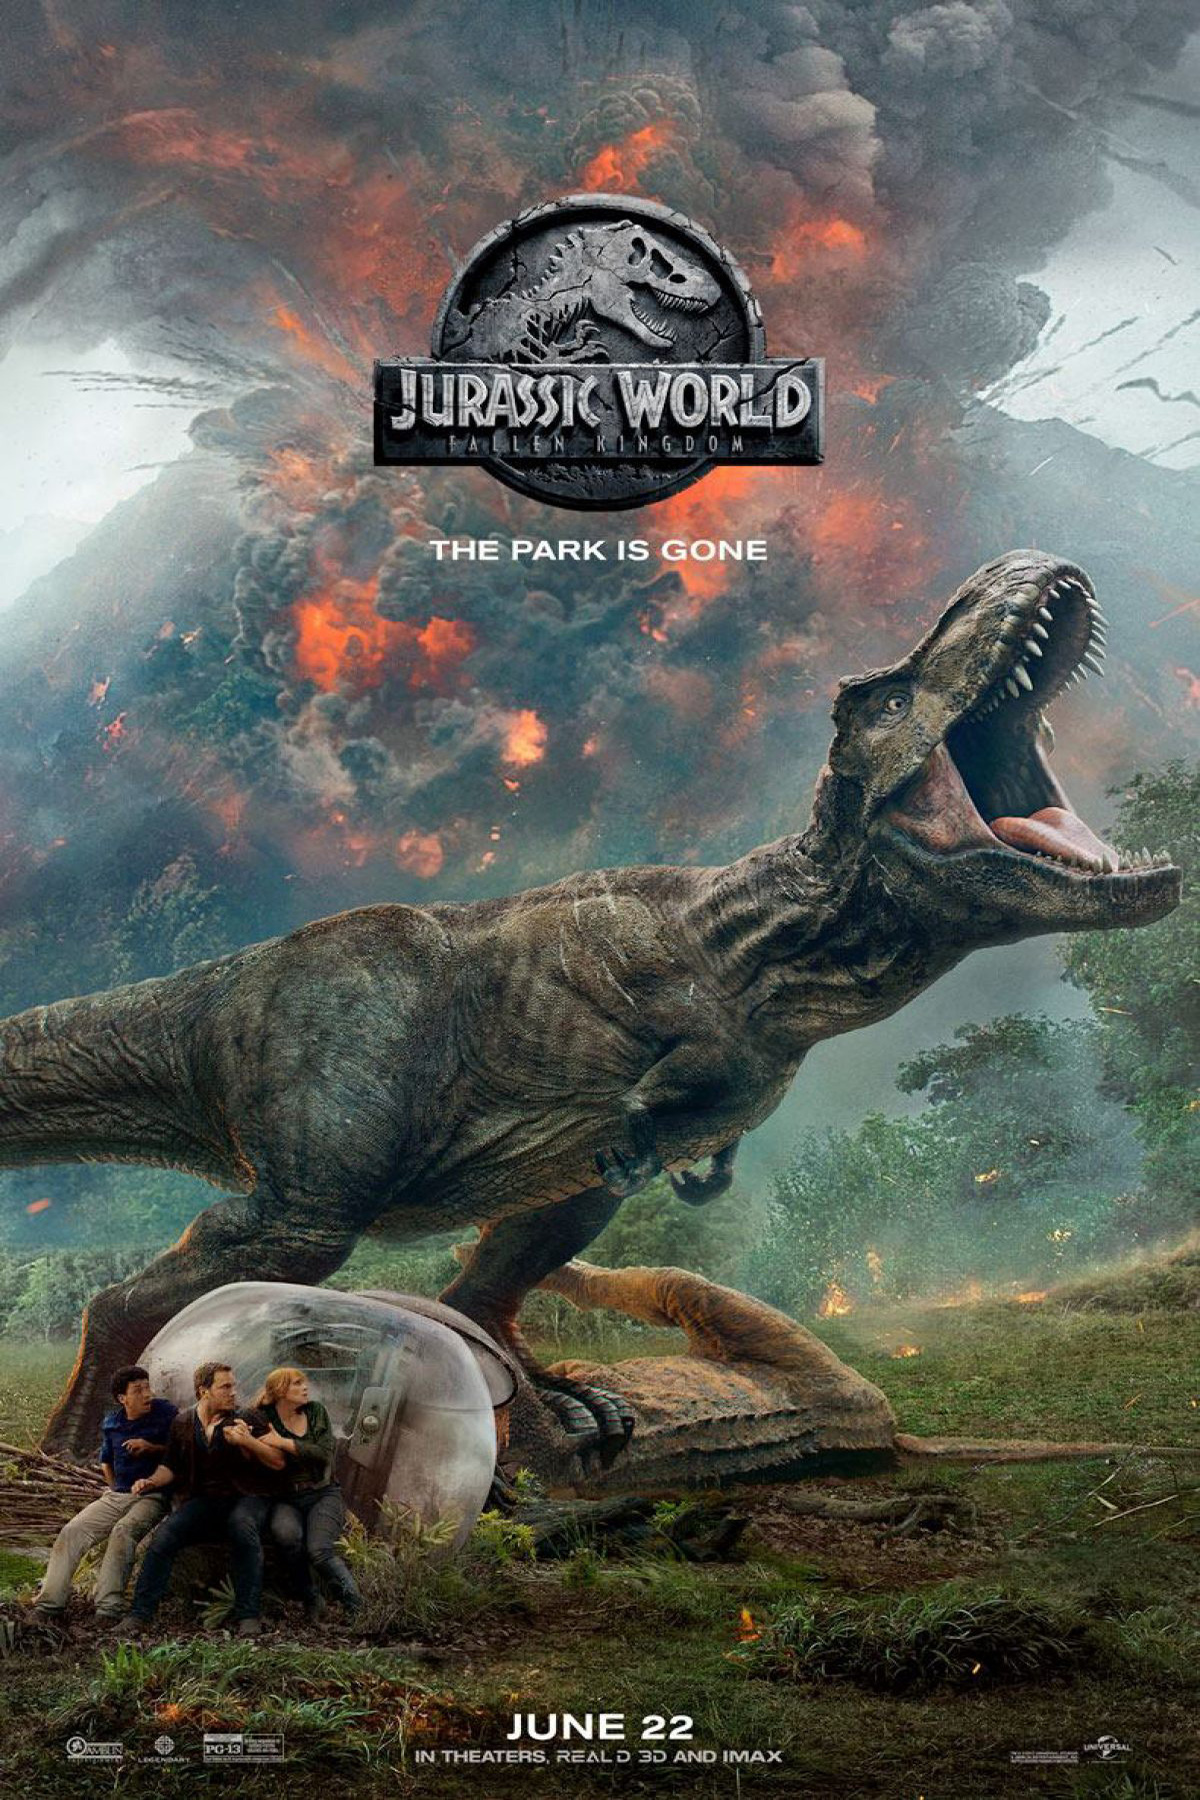 Jurassic World: Fallen Kingdom at an AMC Theatre near you